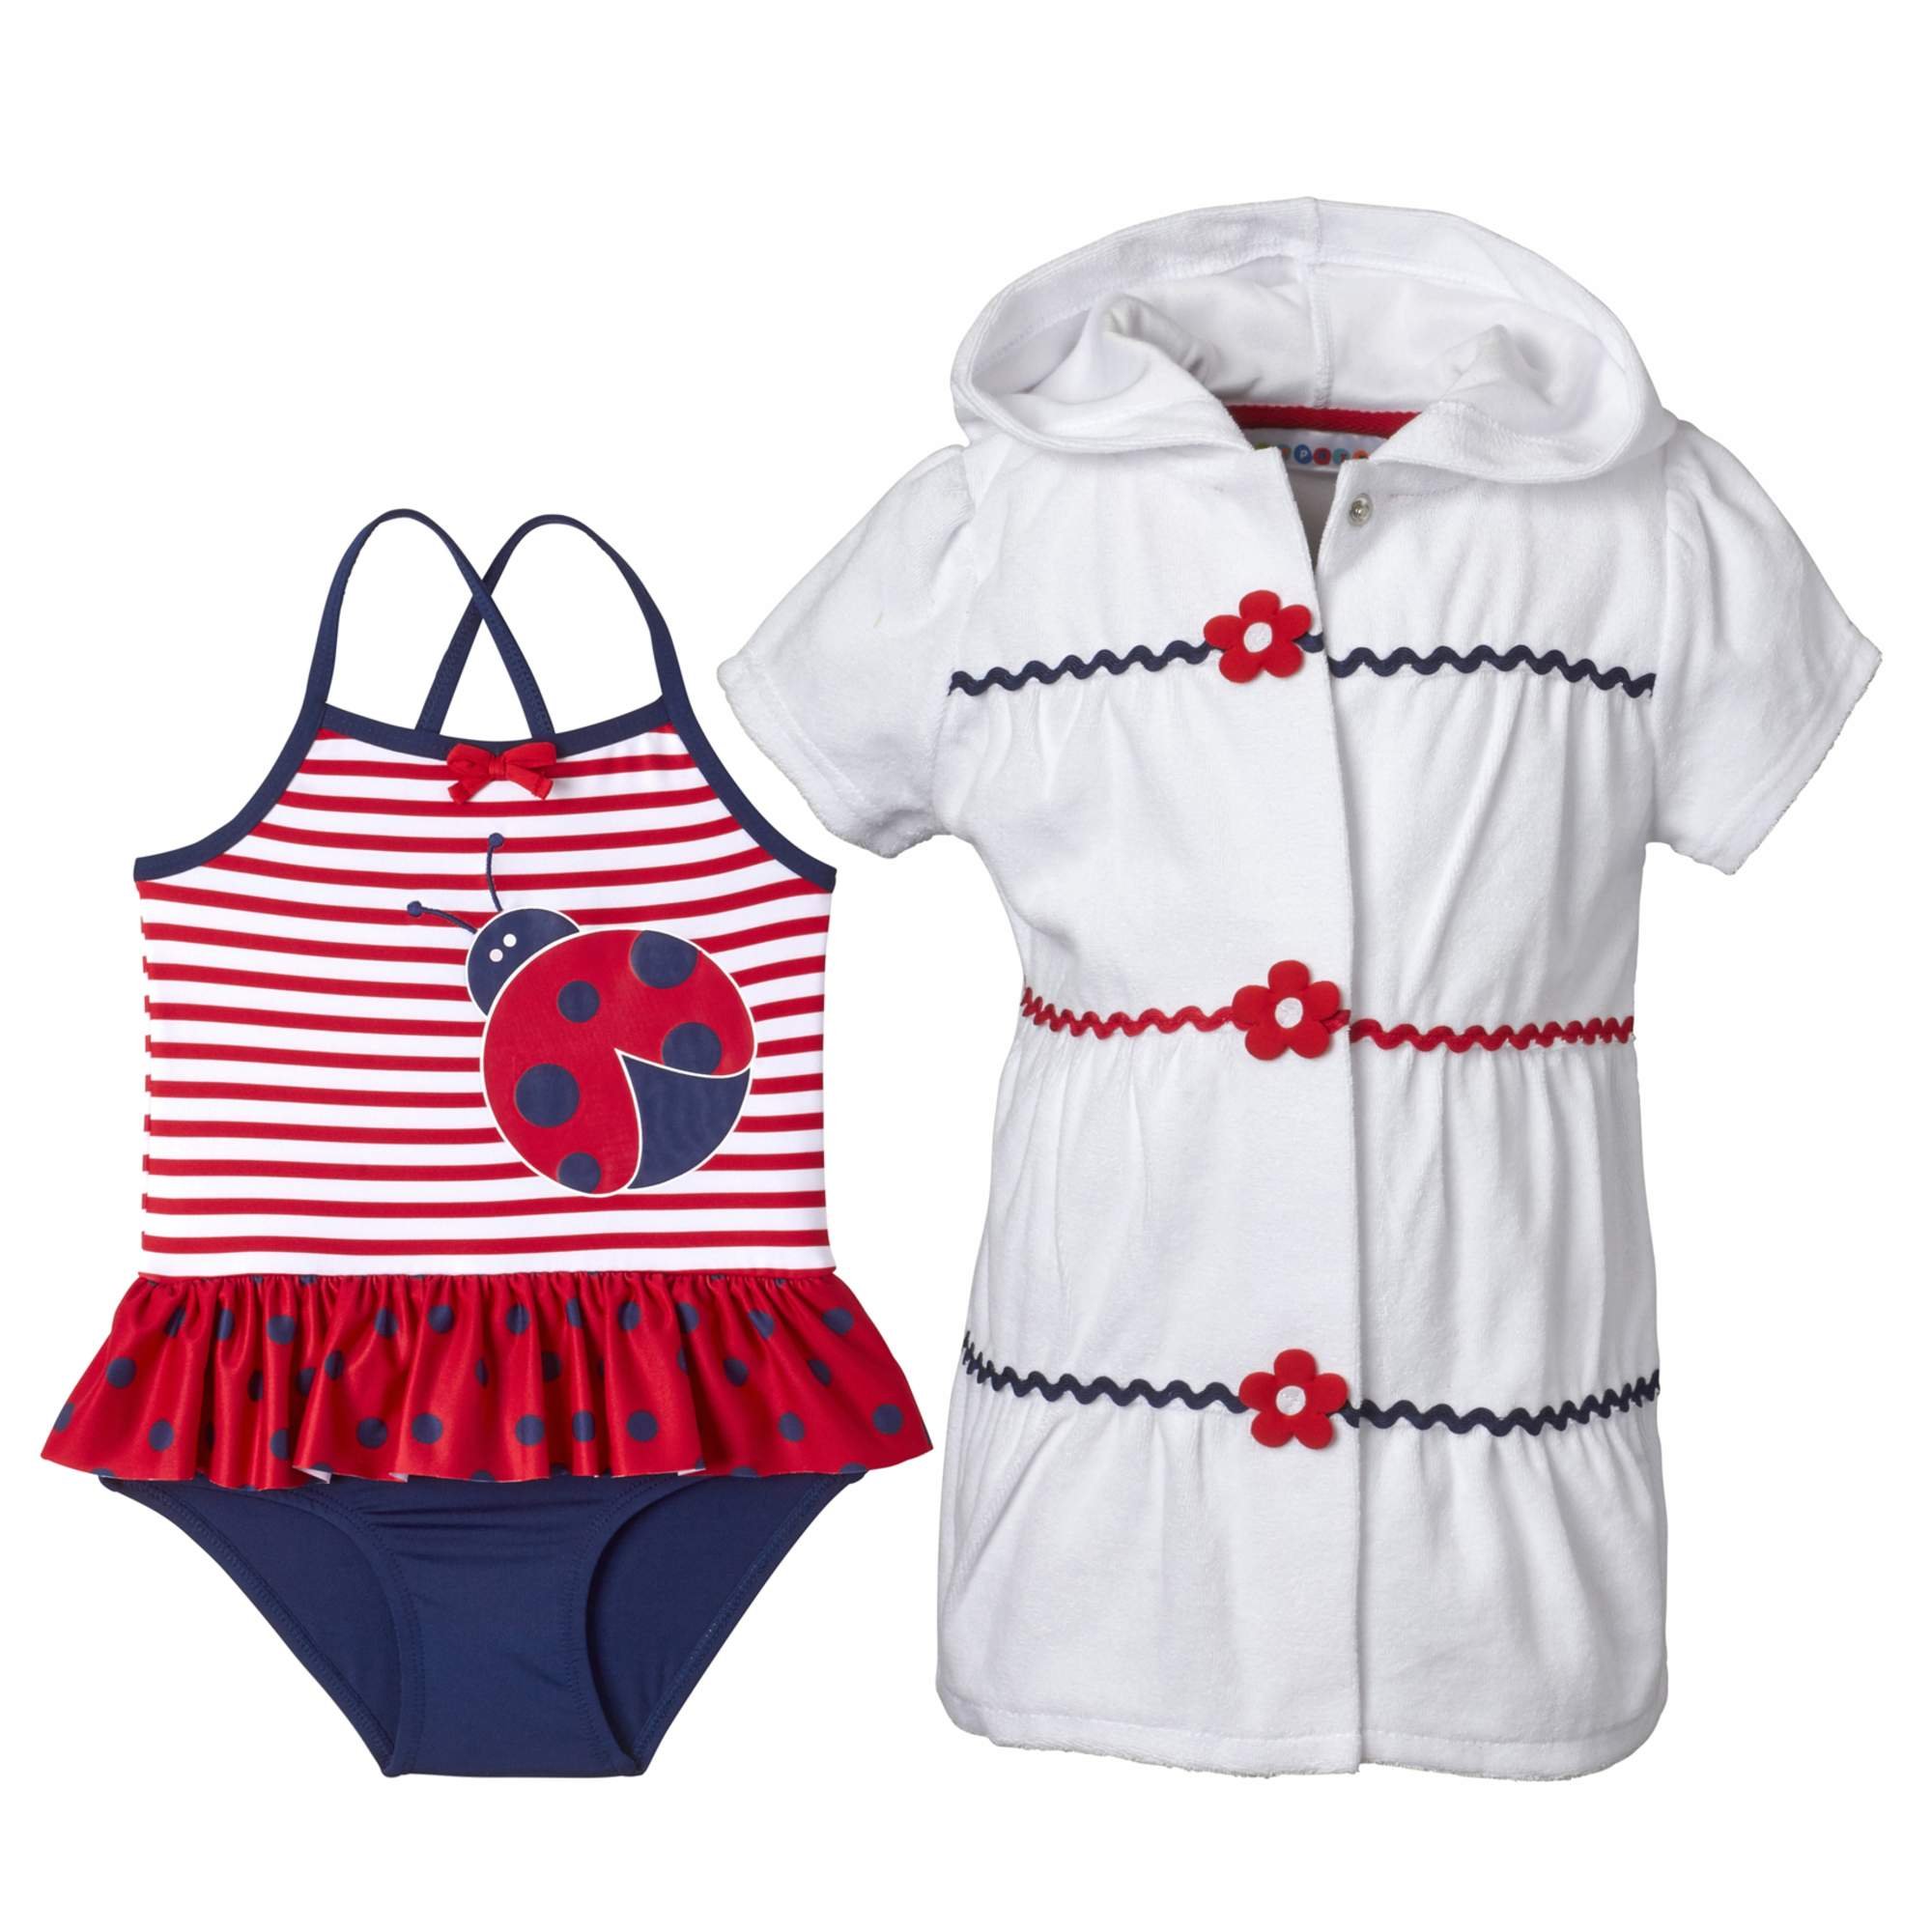 Wippette Toddler Girls Coverup Set with Ladybug